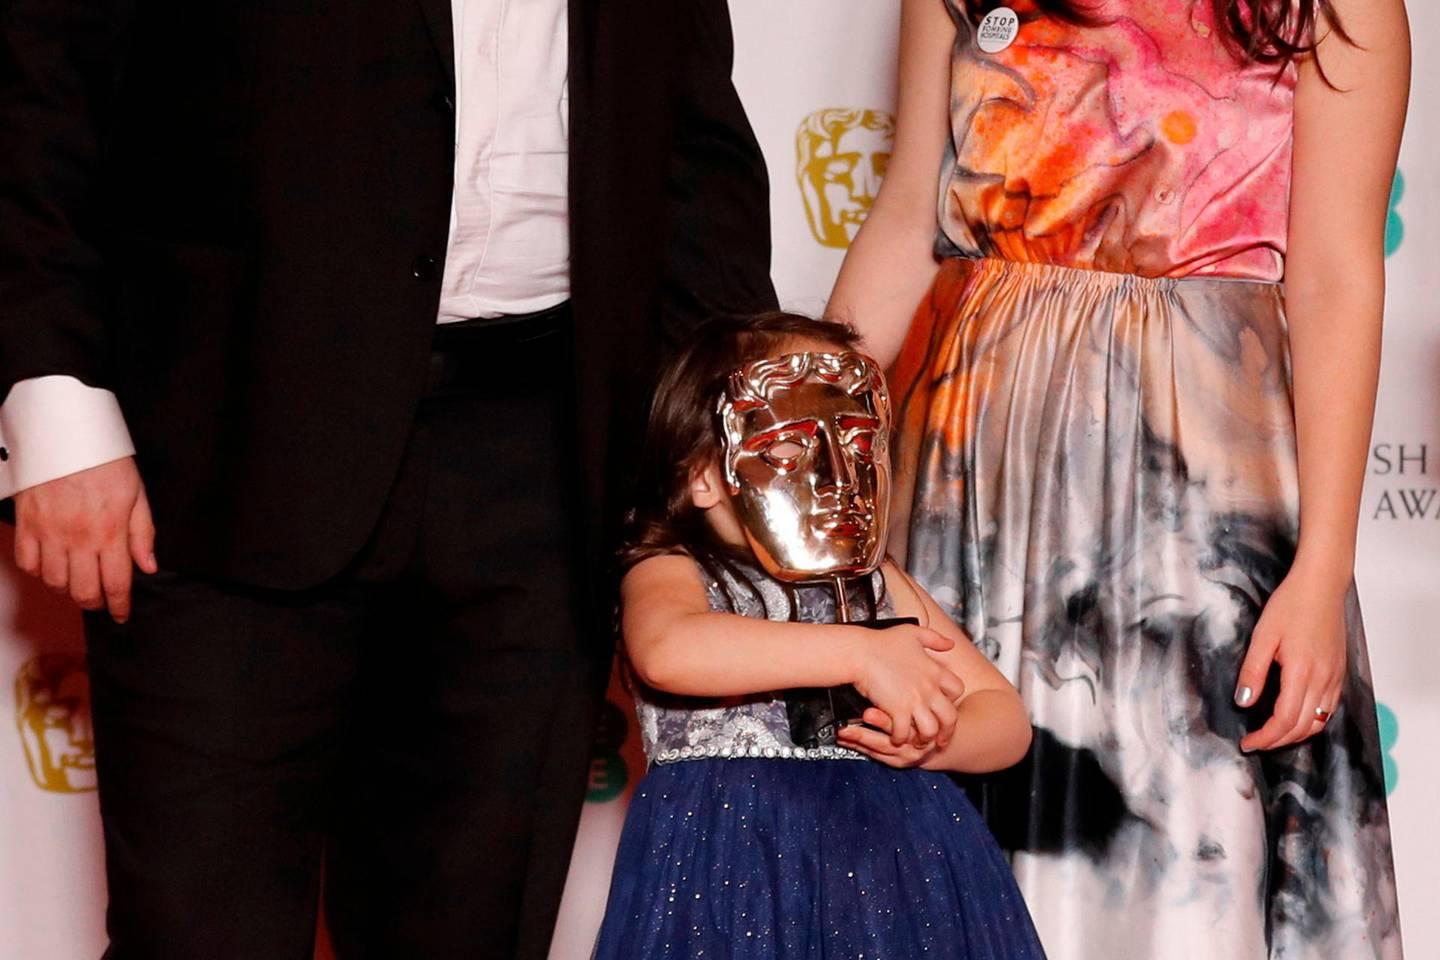 Sama (C) holds the award over her face as (L-R) Hamza al-Kateab and Syrian filmmaker Waad al-Kateab pose during the award for a Documentary for 'For Sama' at the BAFTA British Academy Film Awards at the Royal Albert Hall in London on February 2, 2020.   / AFP / Adrian DENNIS